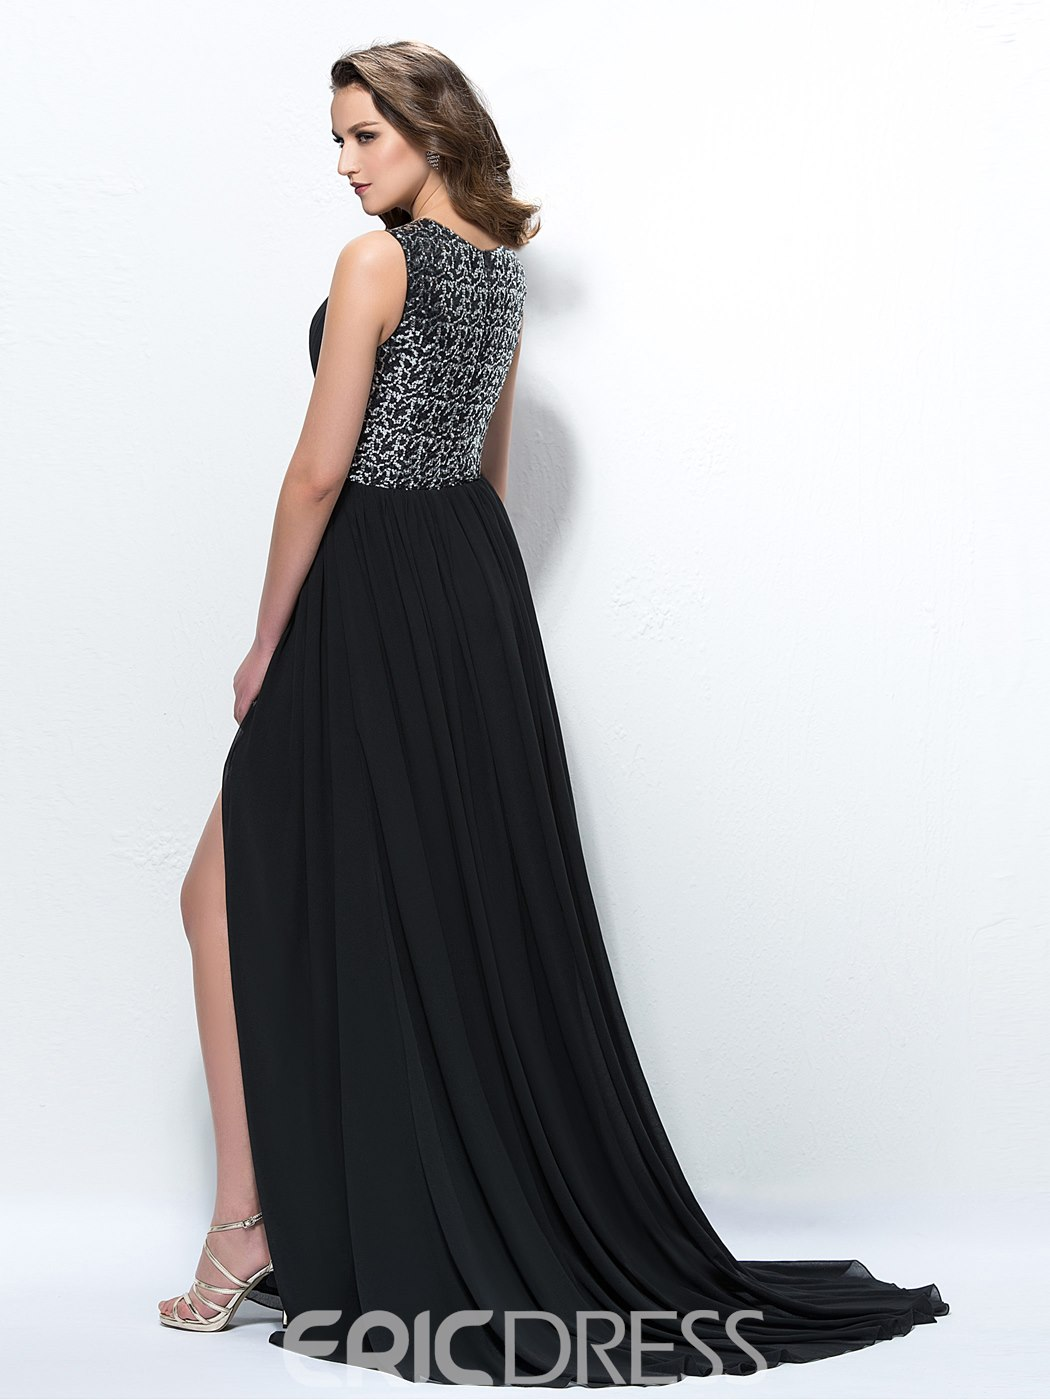 Ericdress A-Line Empire Beaded Black Evening Dress With Slit Side